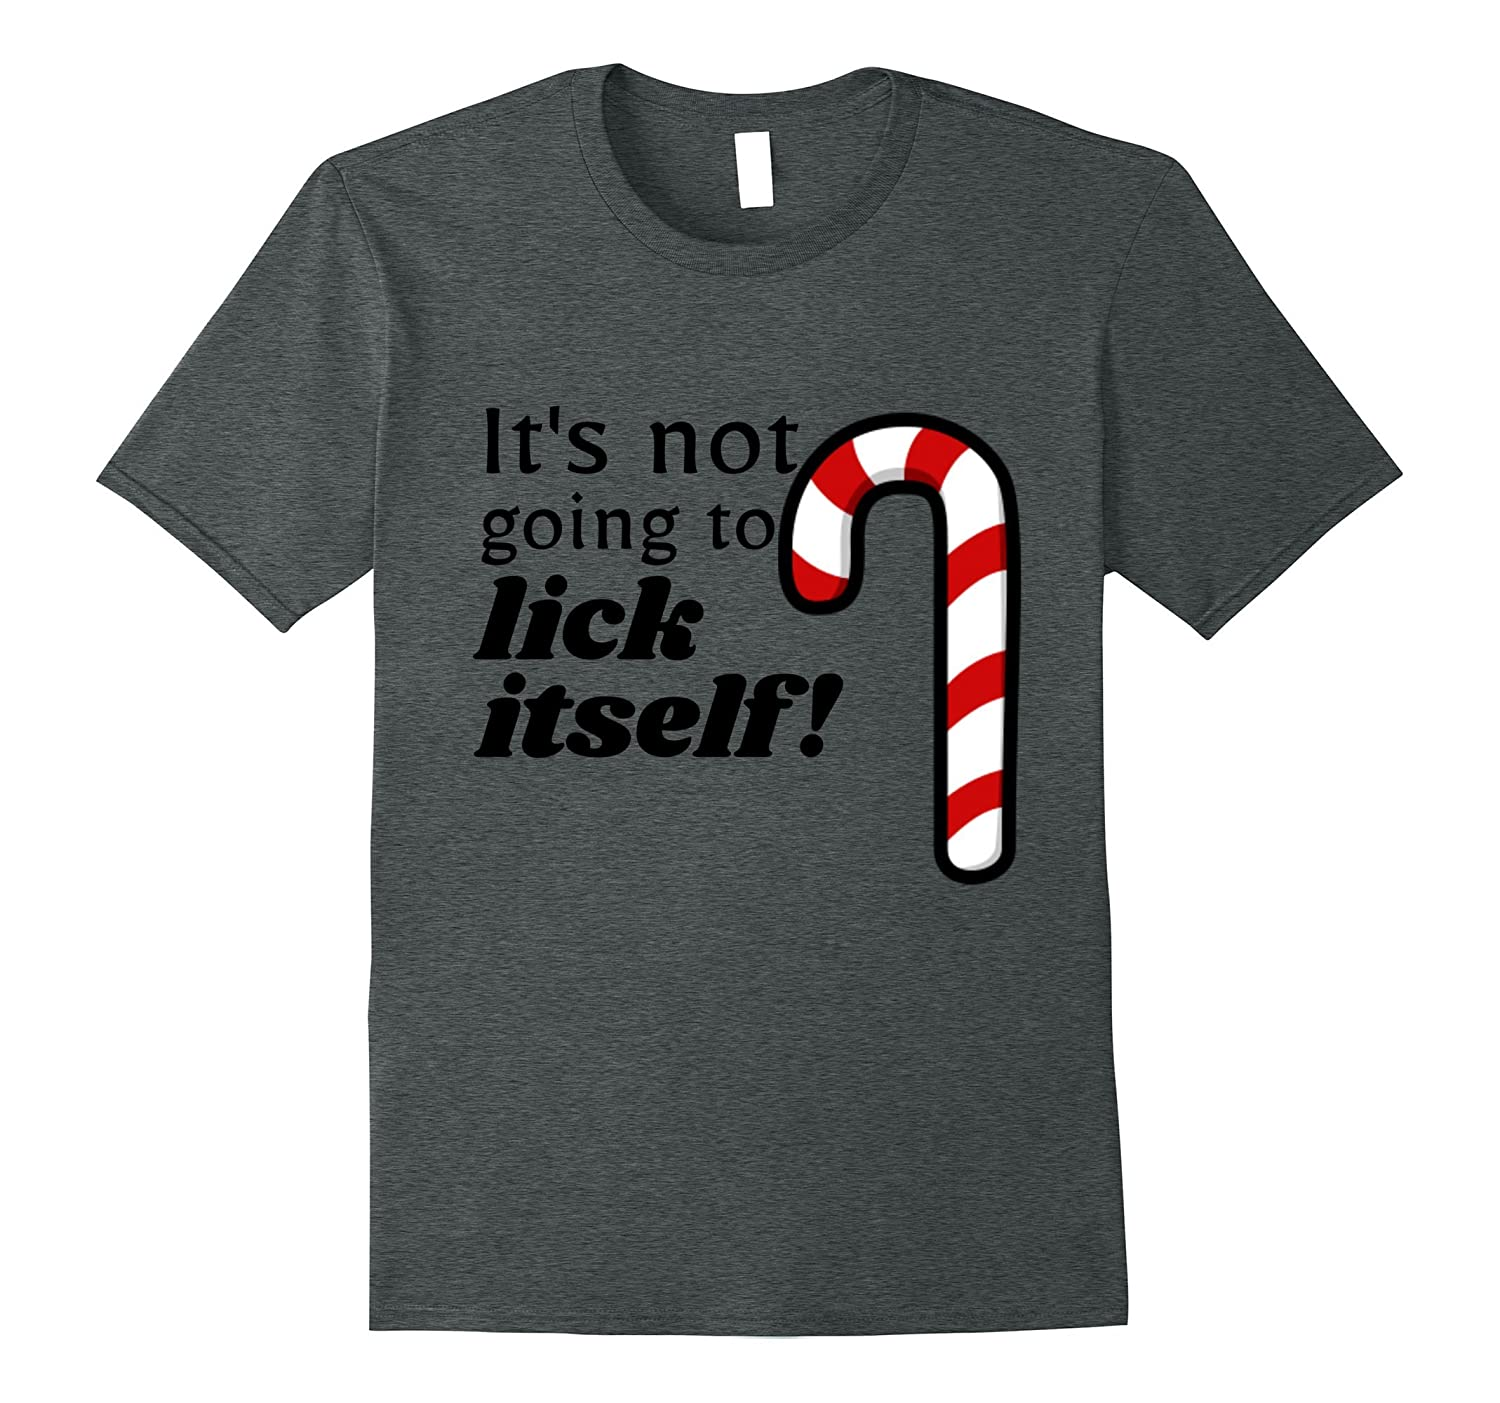 Christmas Adult Funny Candy Cane Lick T-Shirt Humor-FL